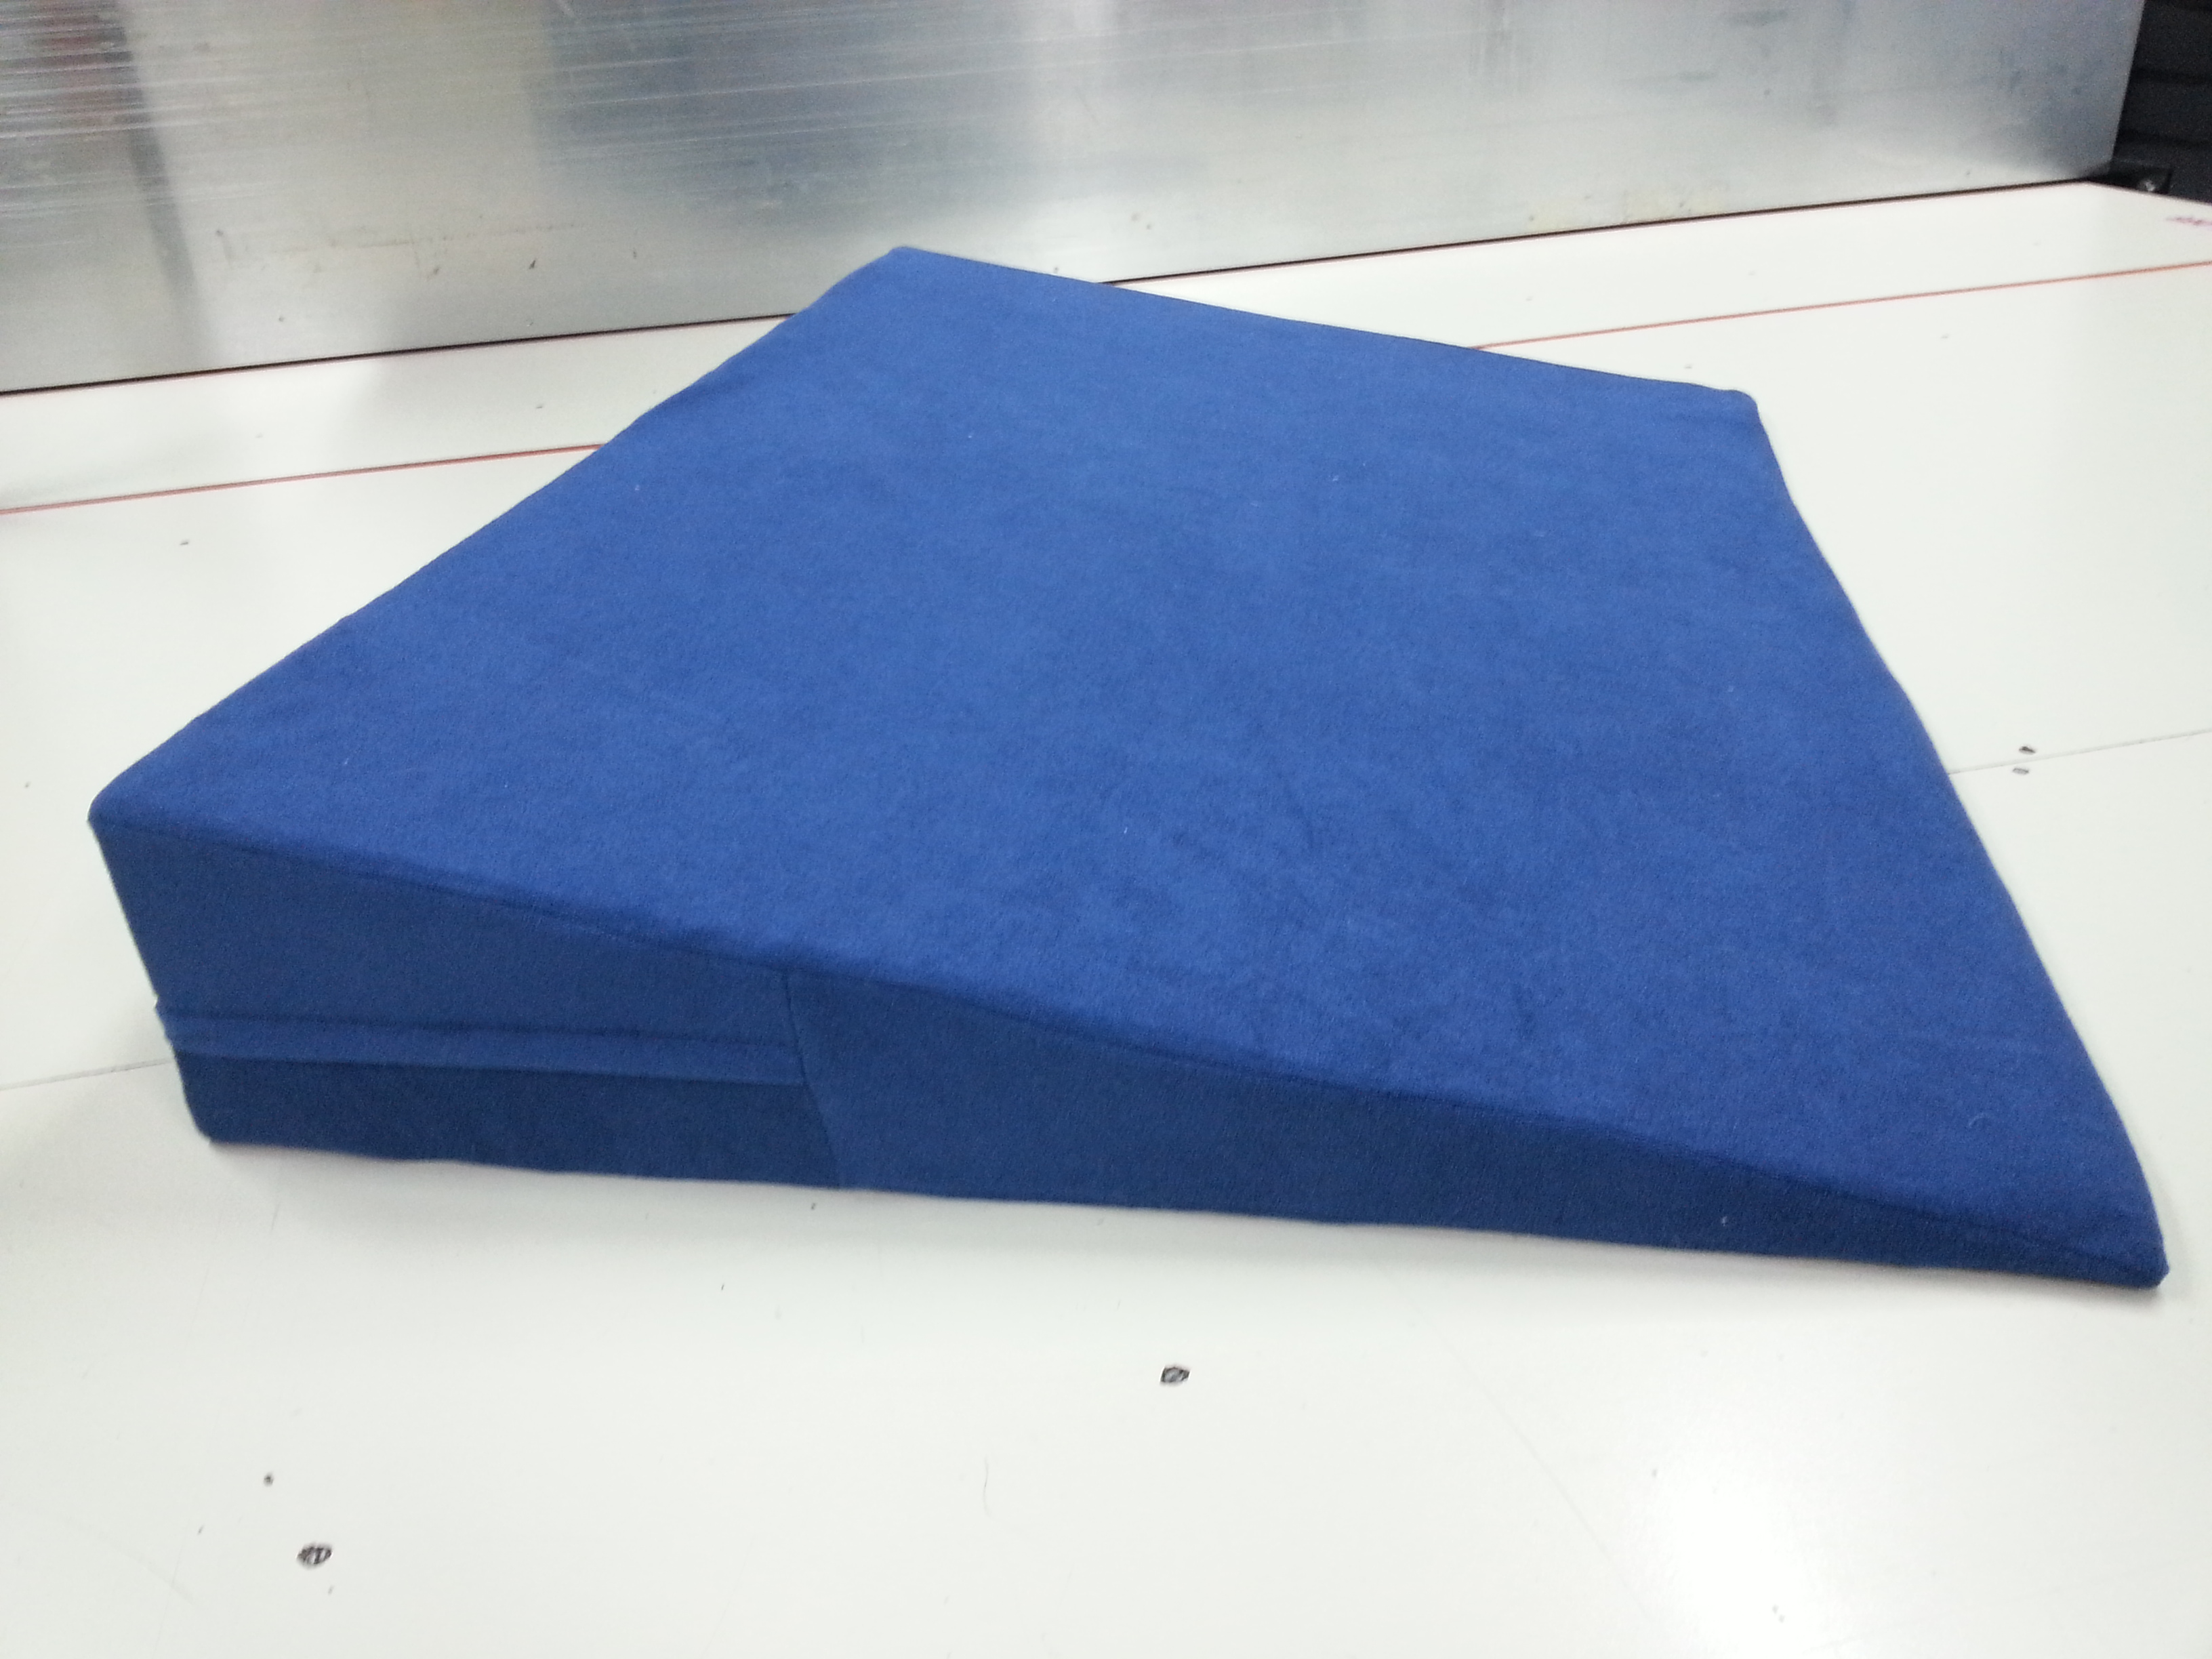 folding incline x products wedge best mat com ip tumbling choice purple gymnastics pink walmart mats shape skill cheese